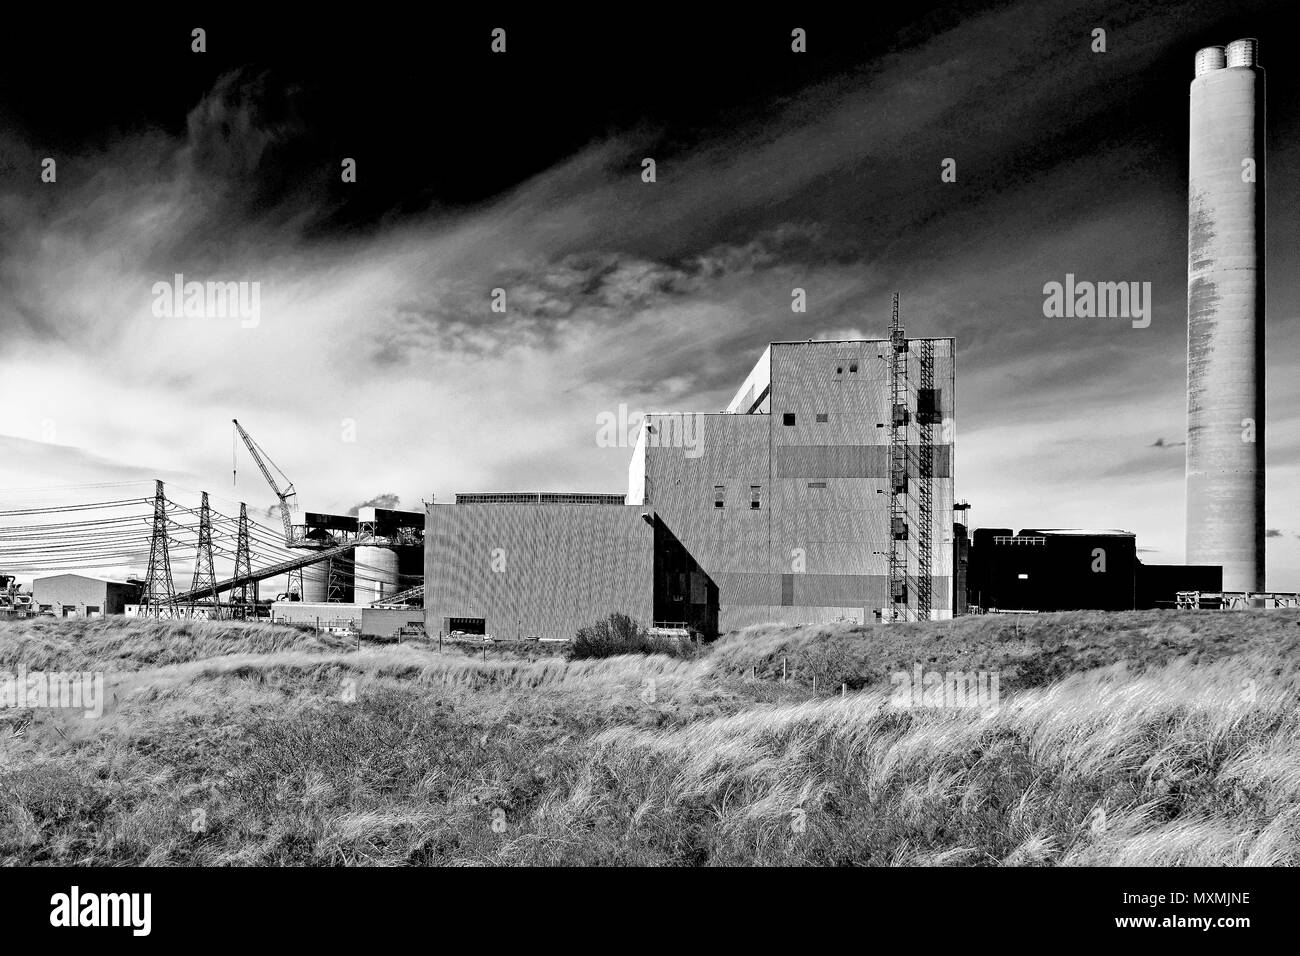 Lynemouth Coal Fired Power Station near Blyth - Stock Image